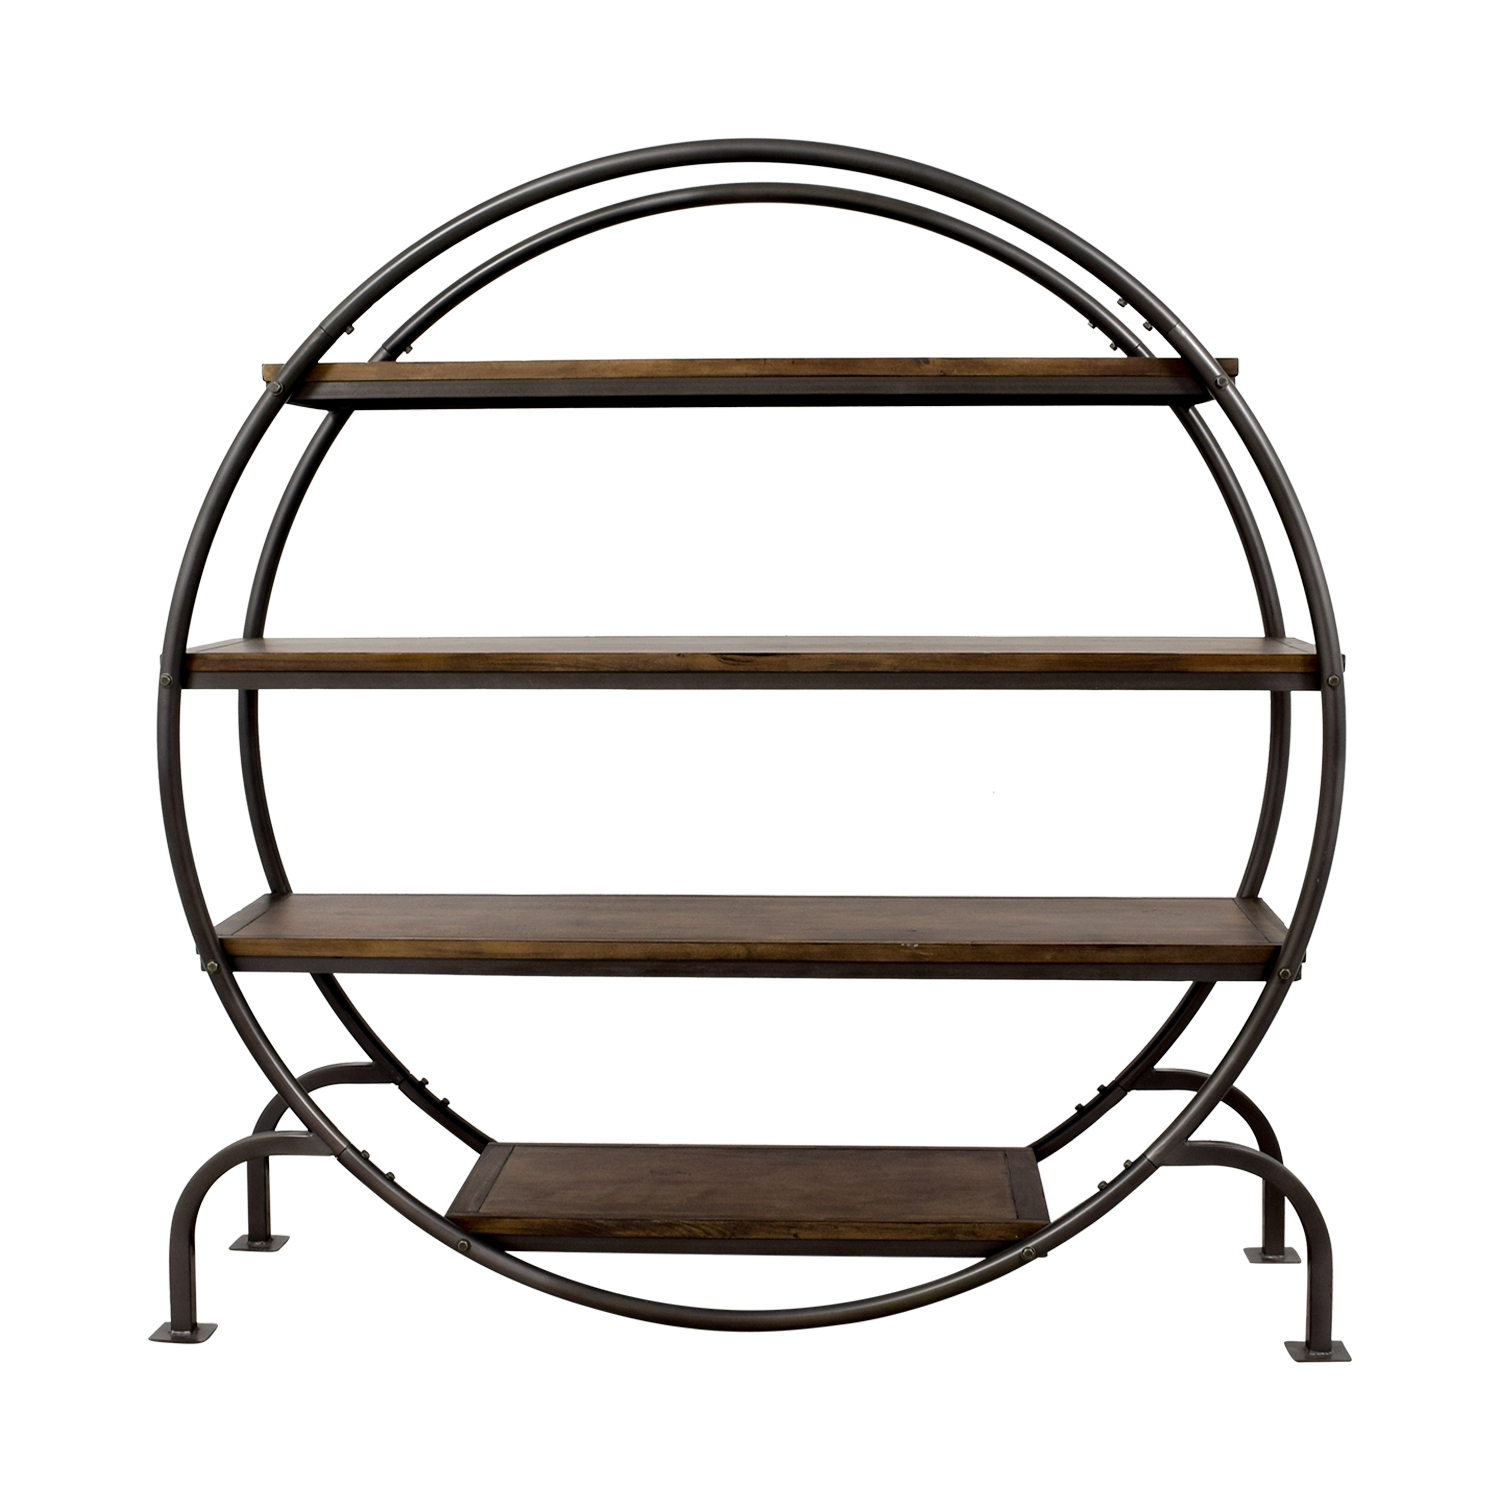 [%61% Off – World Market World Market Round Bookcase / Storage With Regard To Widely Used Round Bookcases|Round Bookcases Inside Well Known 61% Off – World Market World Market Round Bookcase / Storage|Favorite Round Bookcases In 61% Off – World Market World Market Round Bookcase / Storage|Preferred 61% Off – World Market World Market Round Bookcase / Storage Intended For Round Bookcases%] (View 4 of 15)